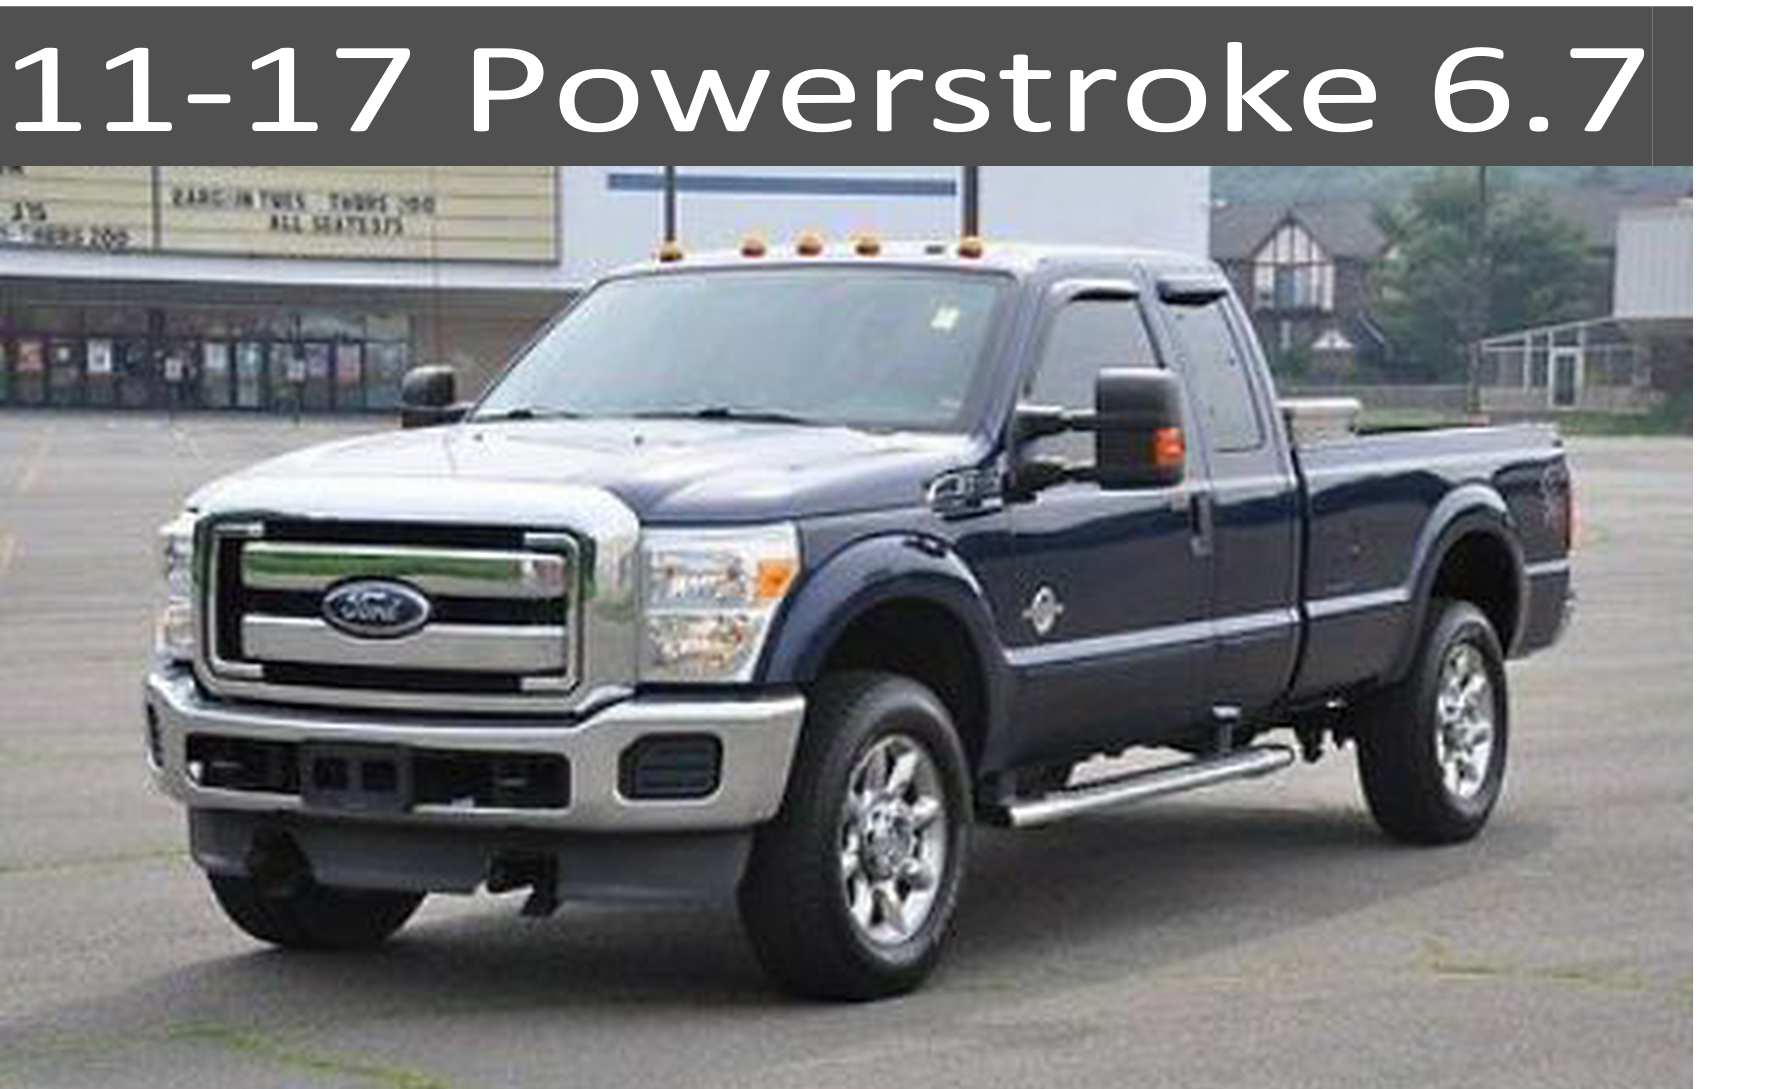 6 4 powerstroke diesel parts 11 17 ford 6 7 powerstroke diesel parts